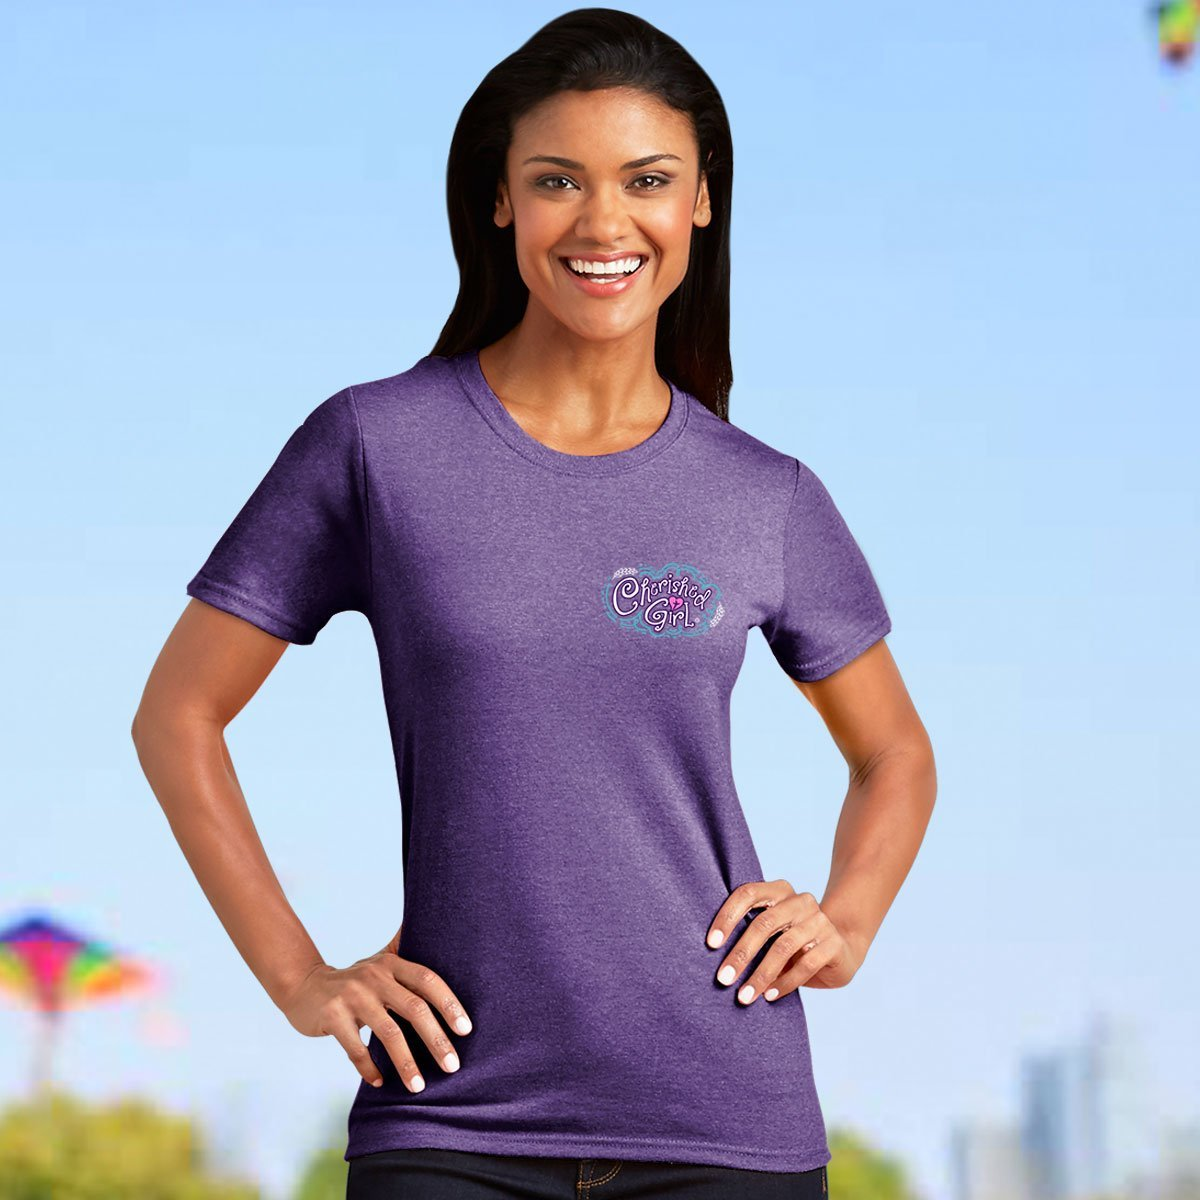 Cherished Girl® Adult T-Shirt - Through Christ